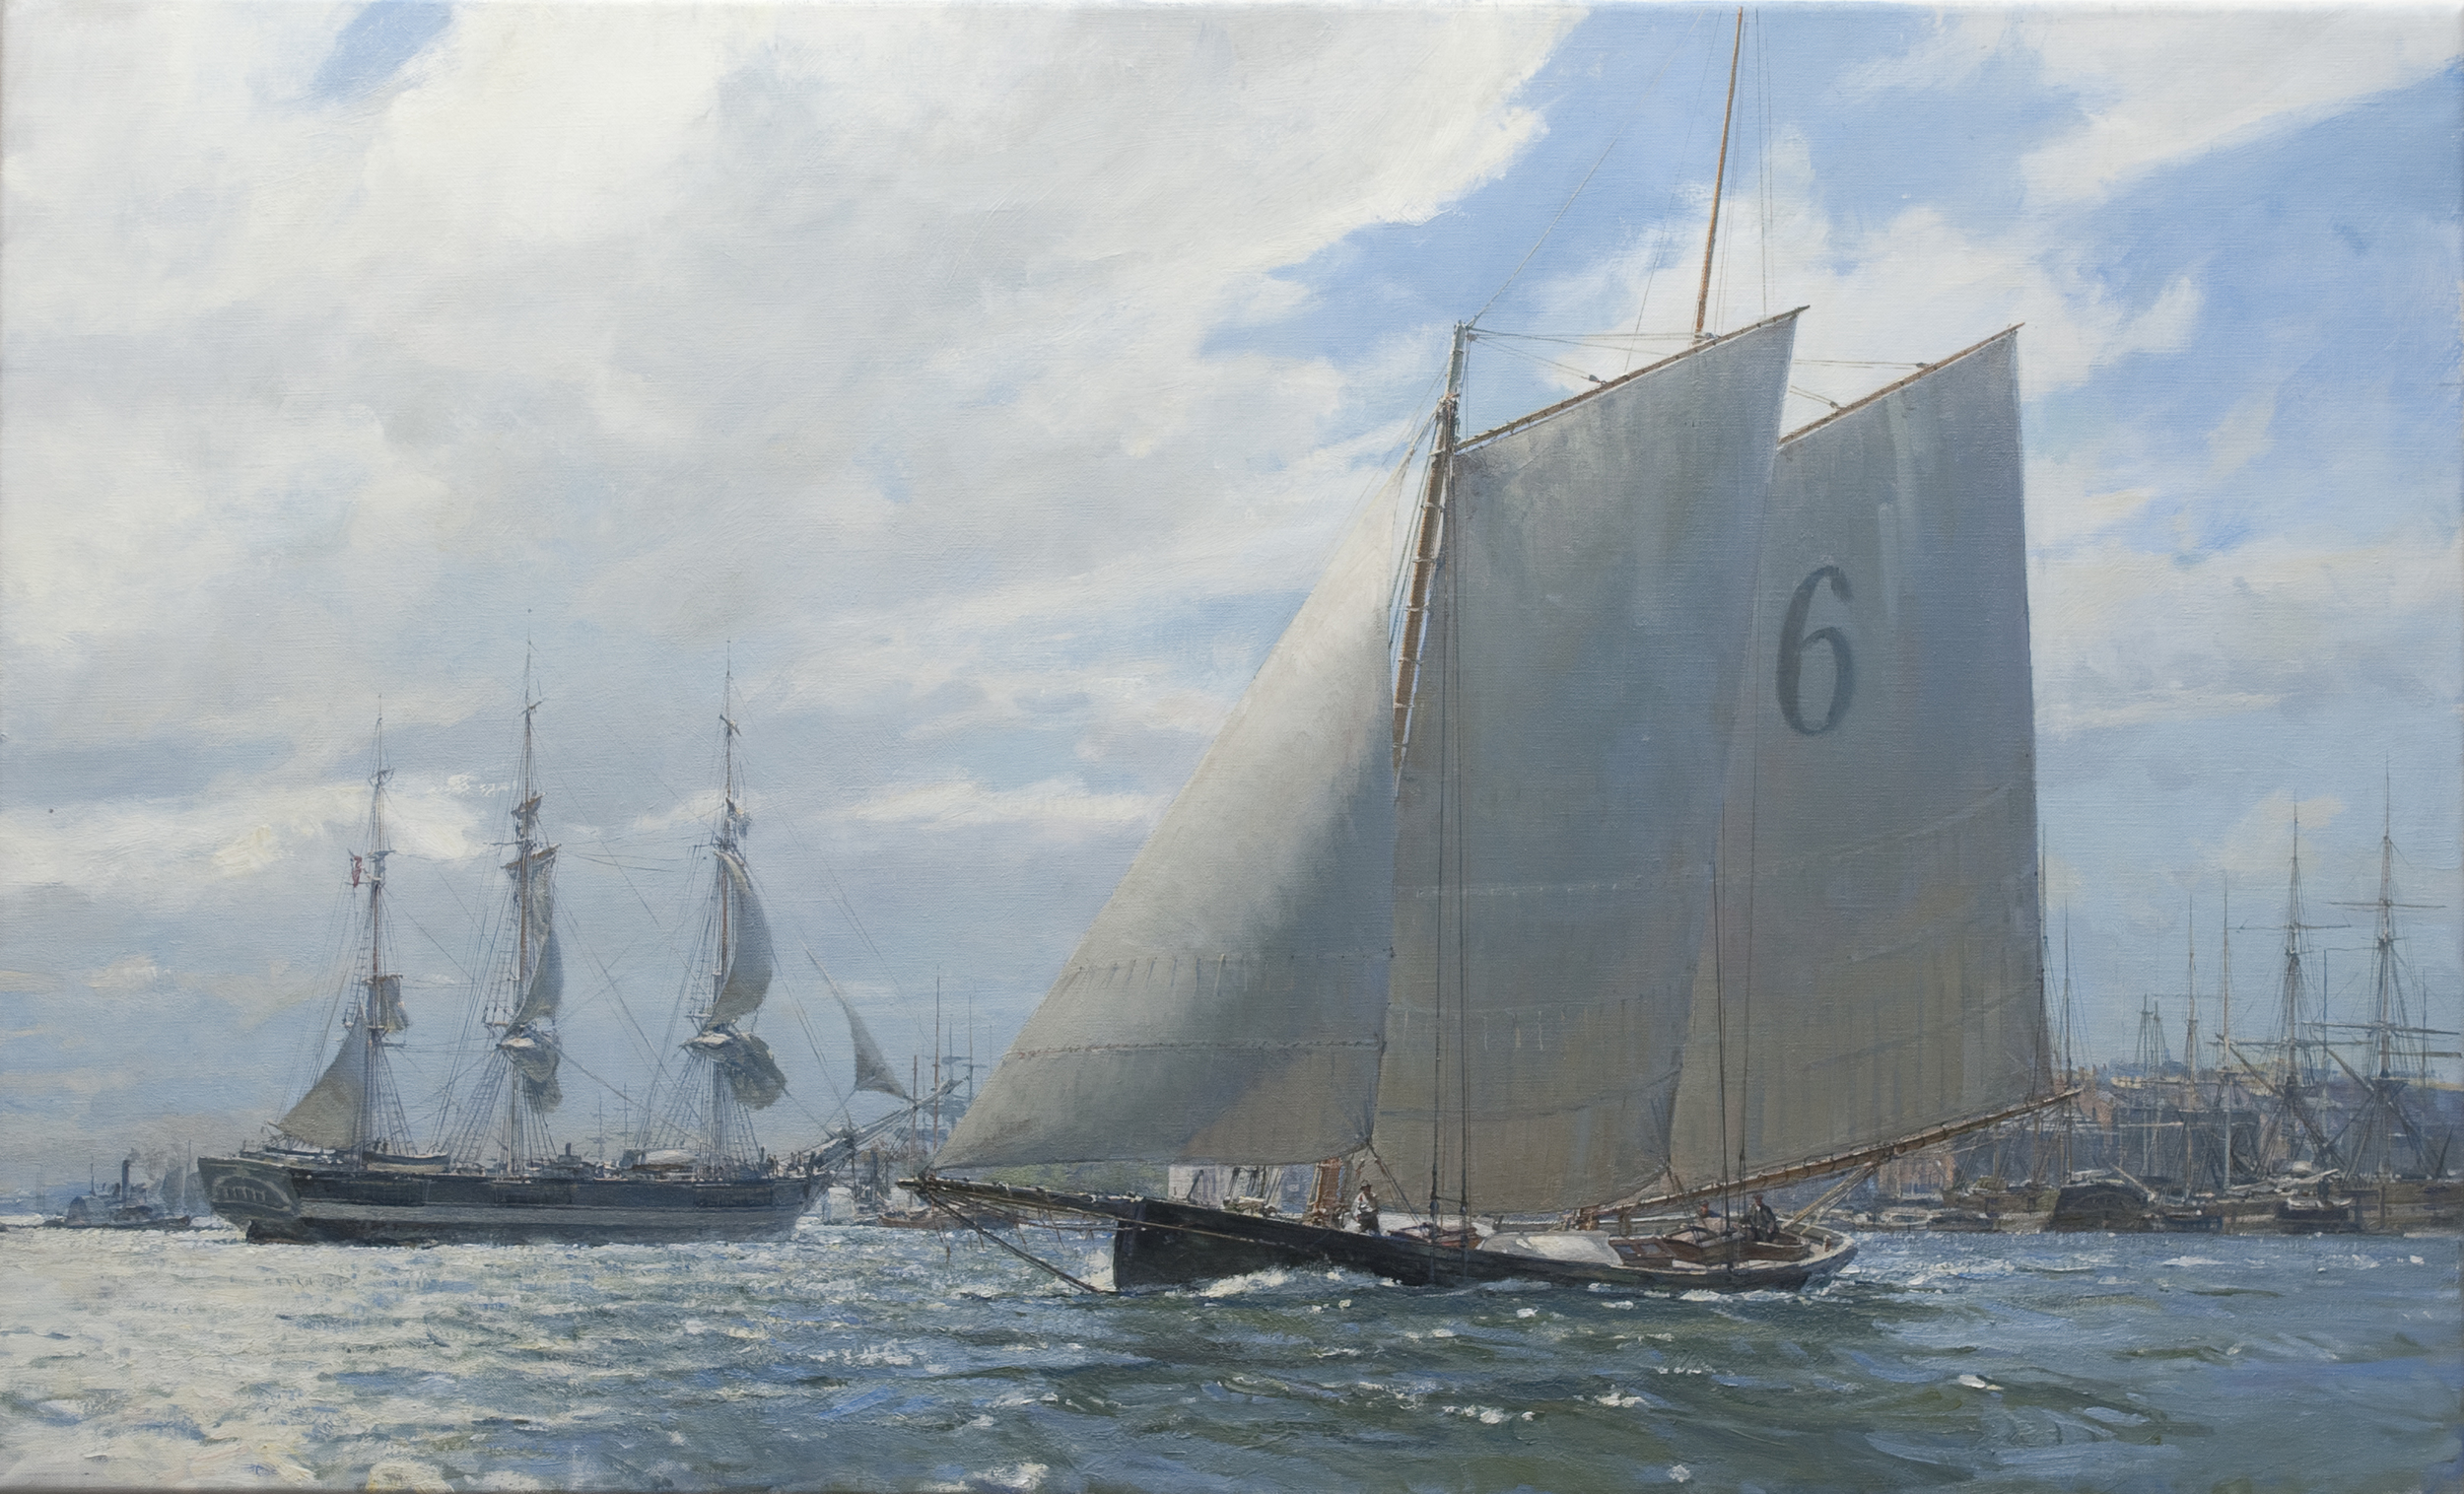 Blossom Final Pilot Boat George Steers Making for Buttermilk Channel, (Version 2) 22 x 36 Oil on Linen, Christopher Blossom (1 of 1).jpg